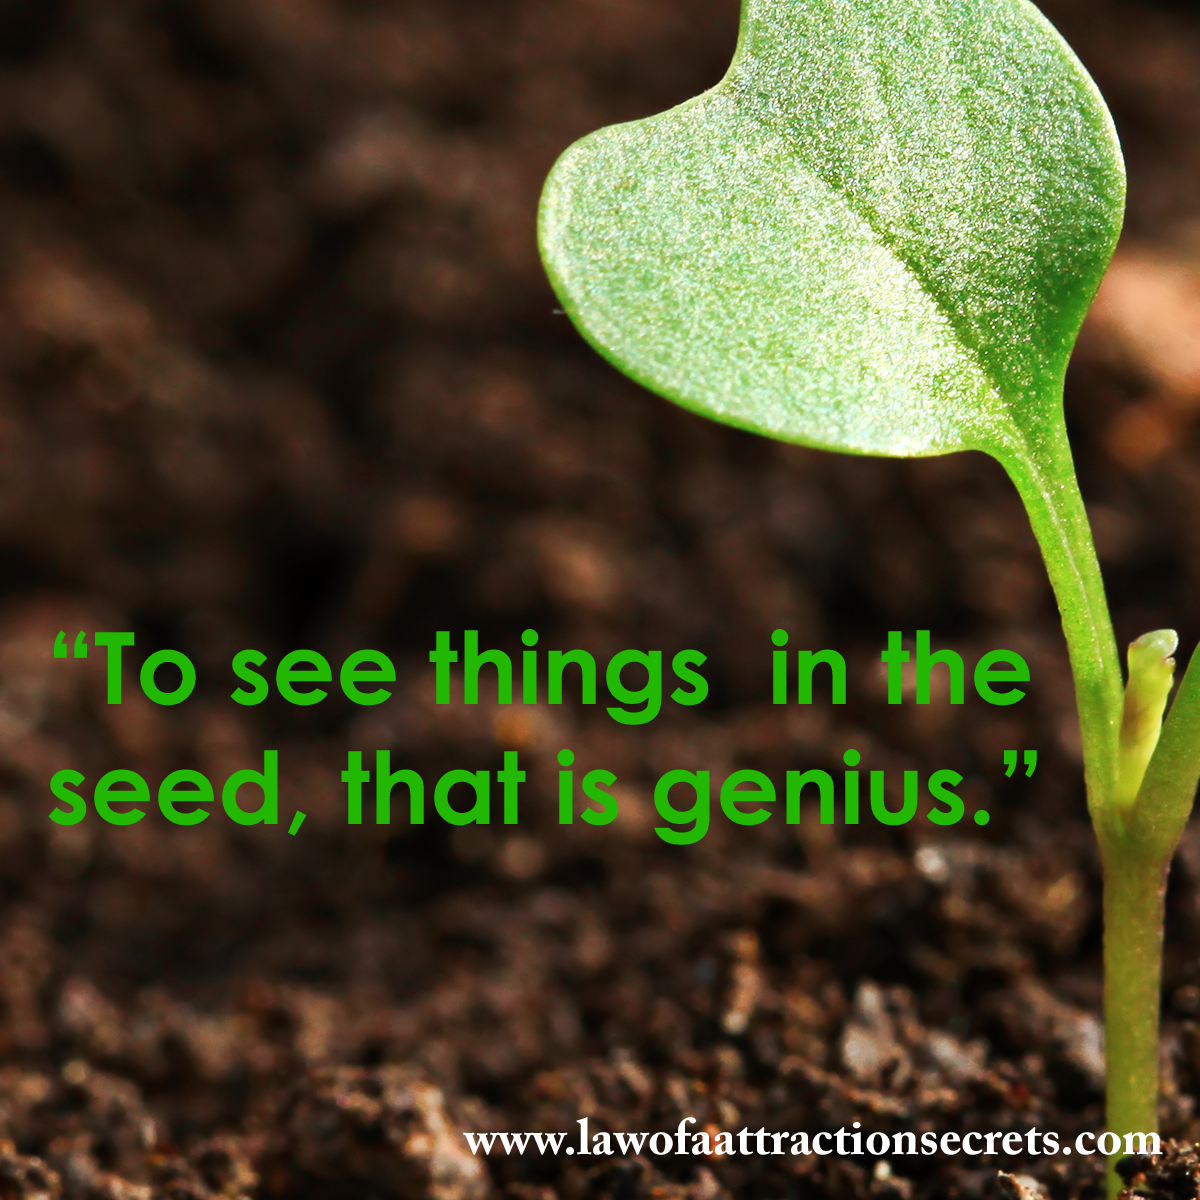 To see things in the seed, that is genius. http://t.co/OTSQAIby9u http://t.co/4KGlgZwfPN